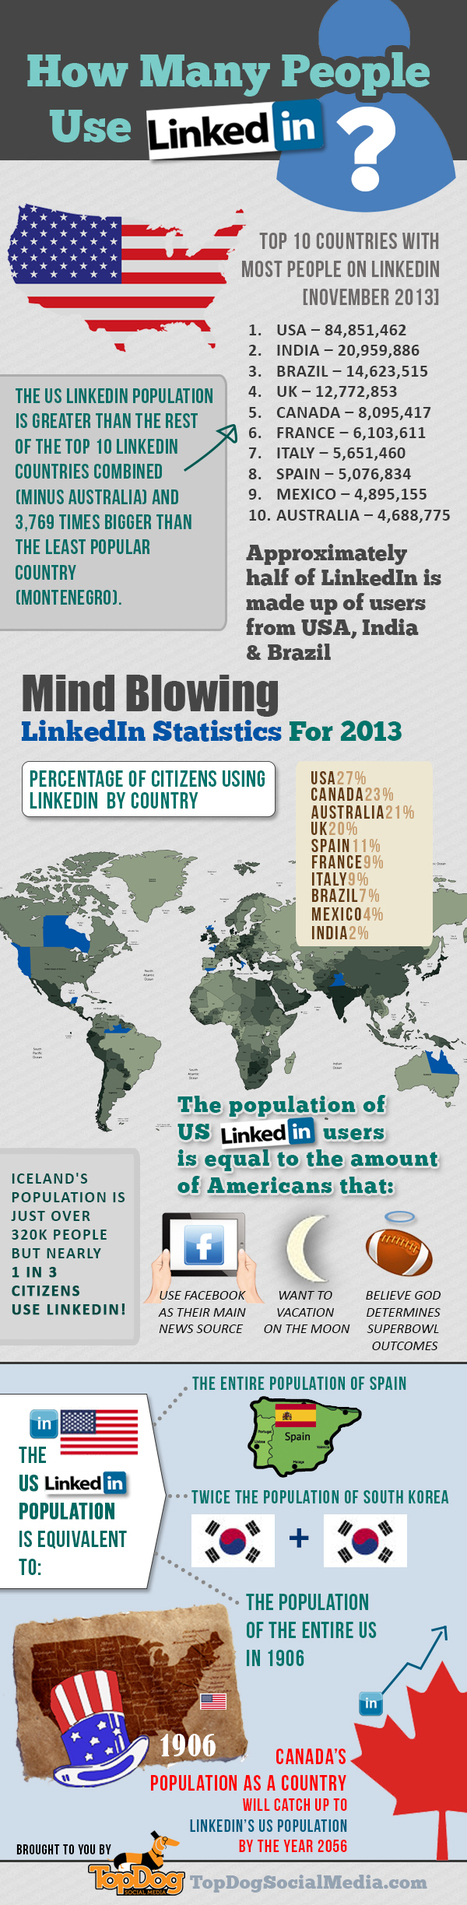 How Many People Use LinkedIn? [Infographic] | Smart Evolution | Scoop.it